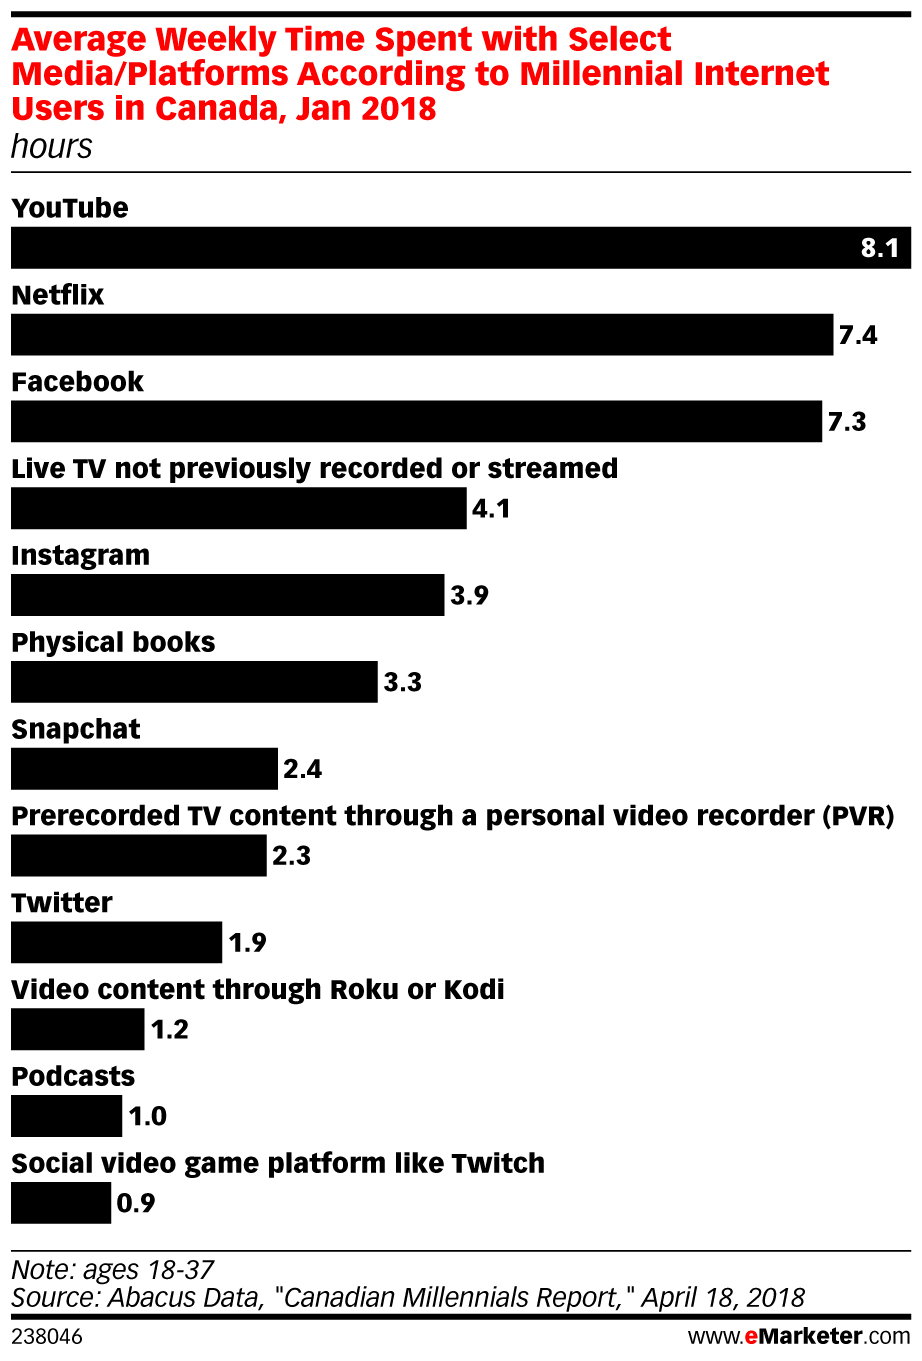 Average Weekly Time Spent with Select Media/Platforms